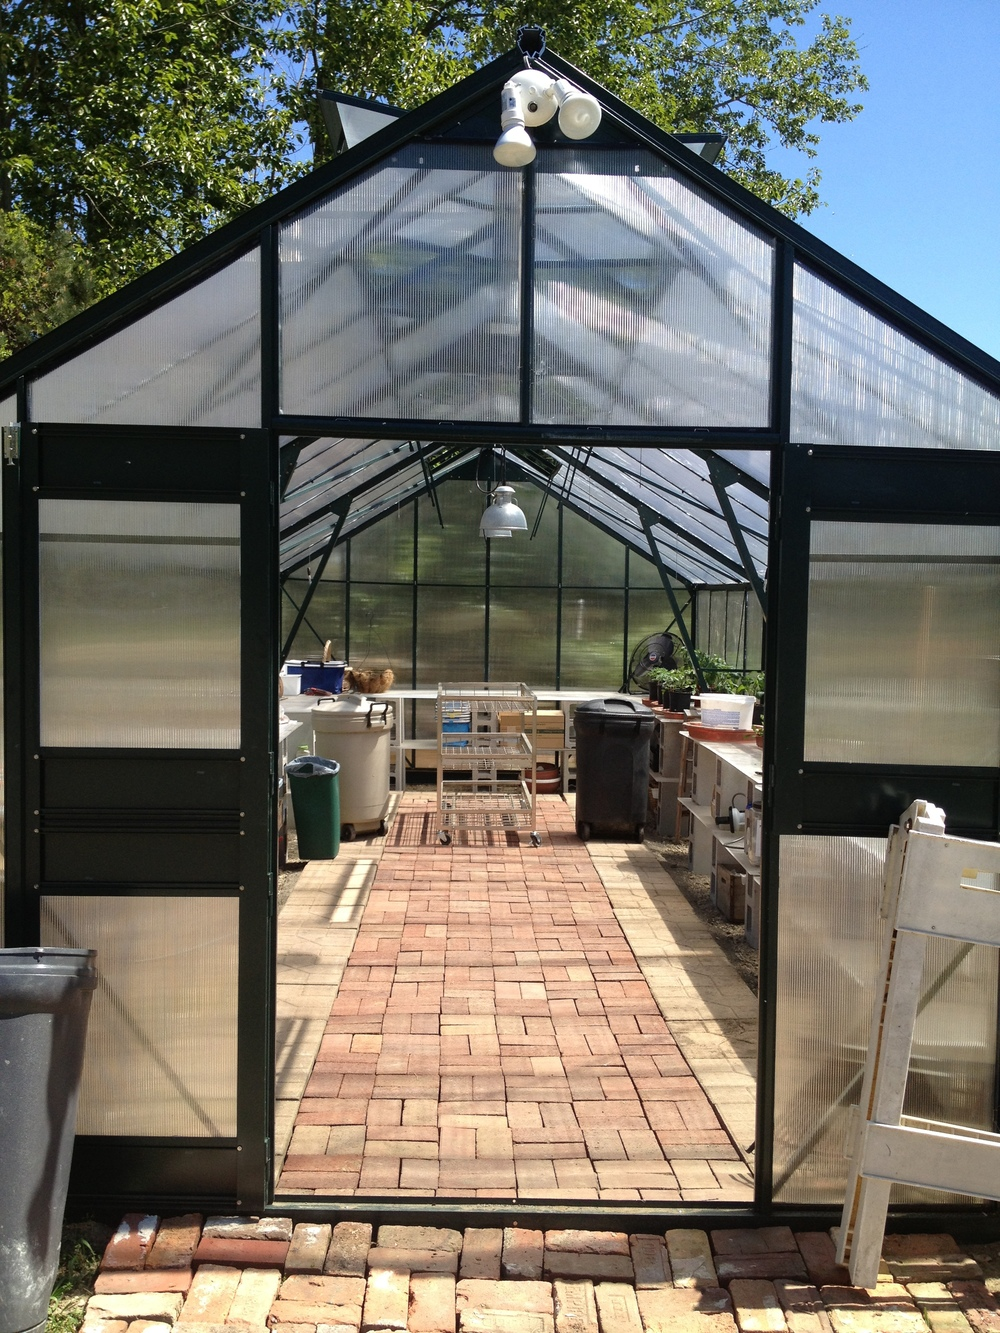 The new greenhouse at its finest. Ready to get packed with seedlings :)